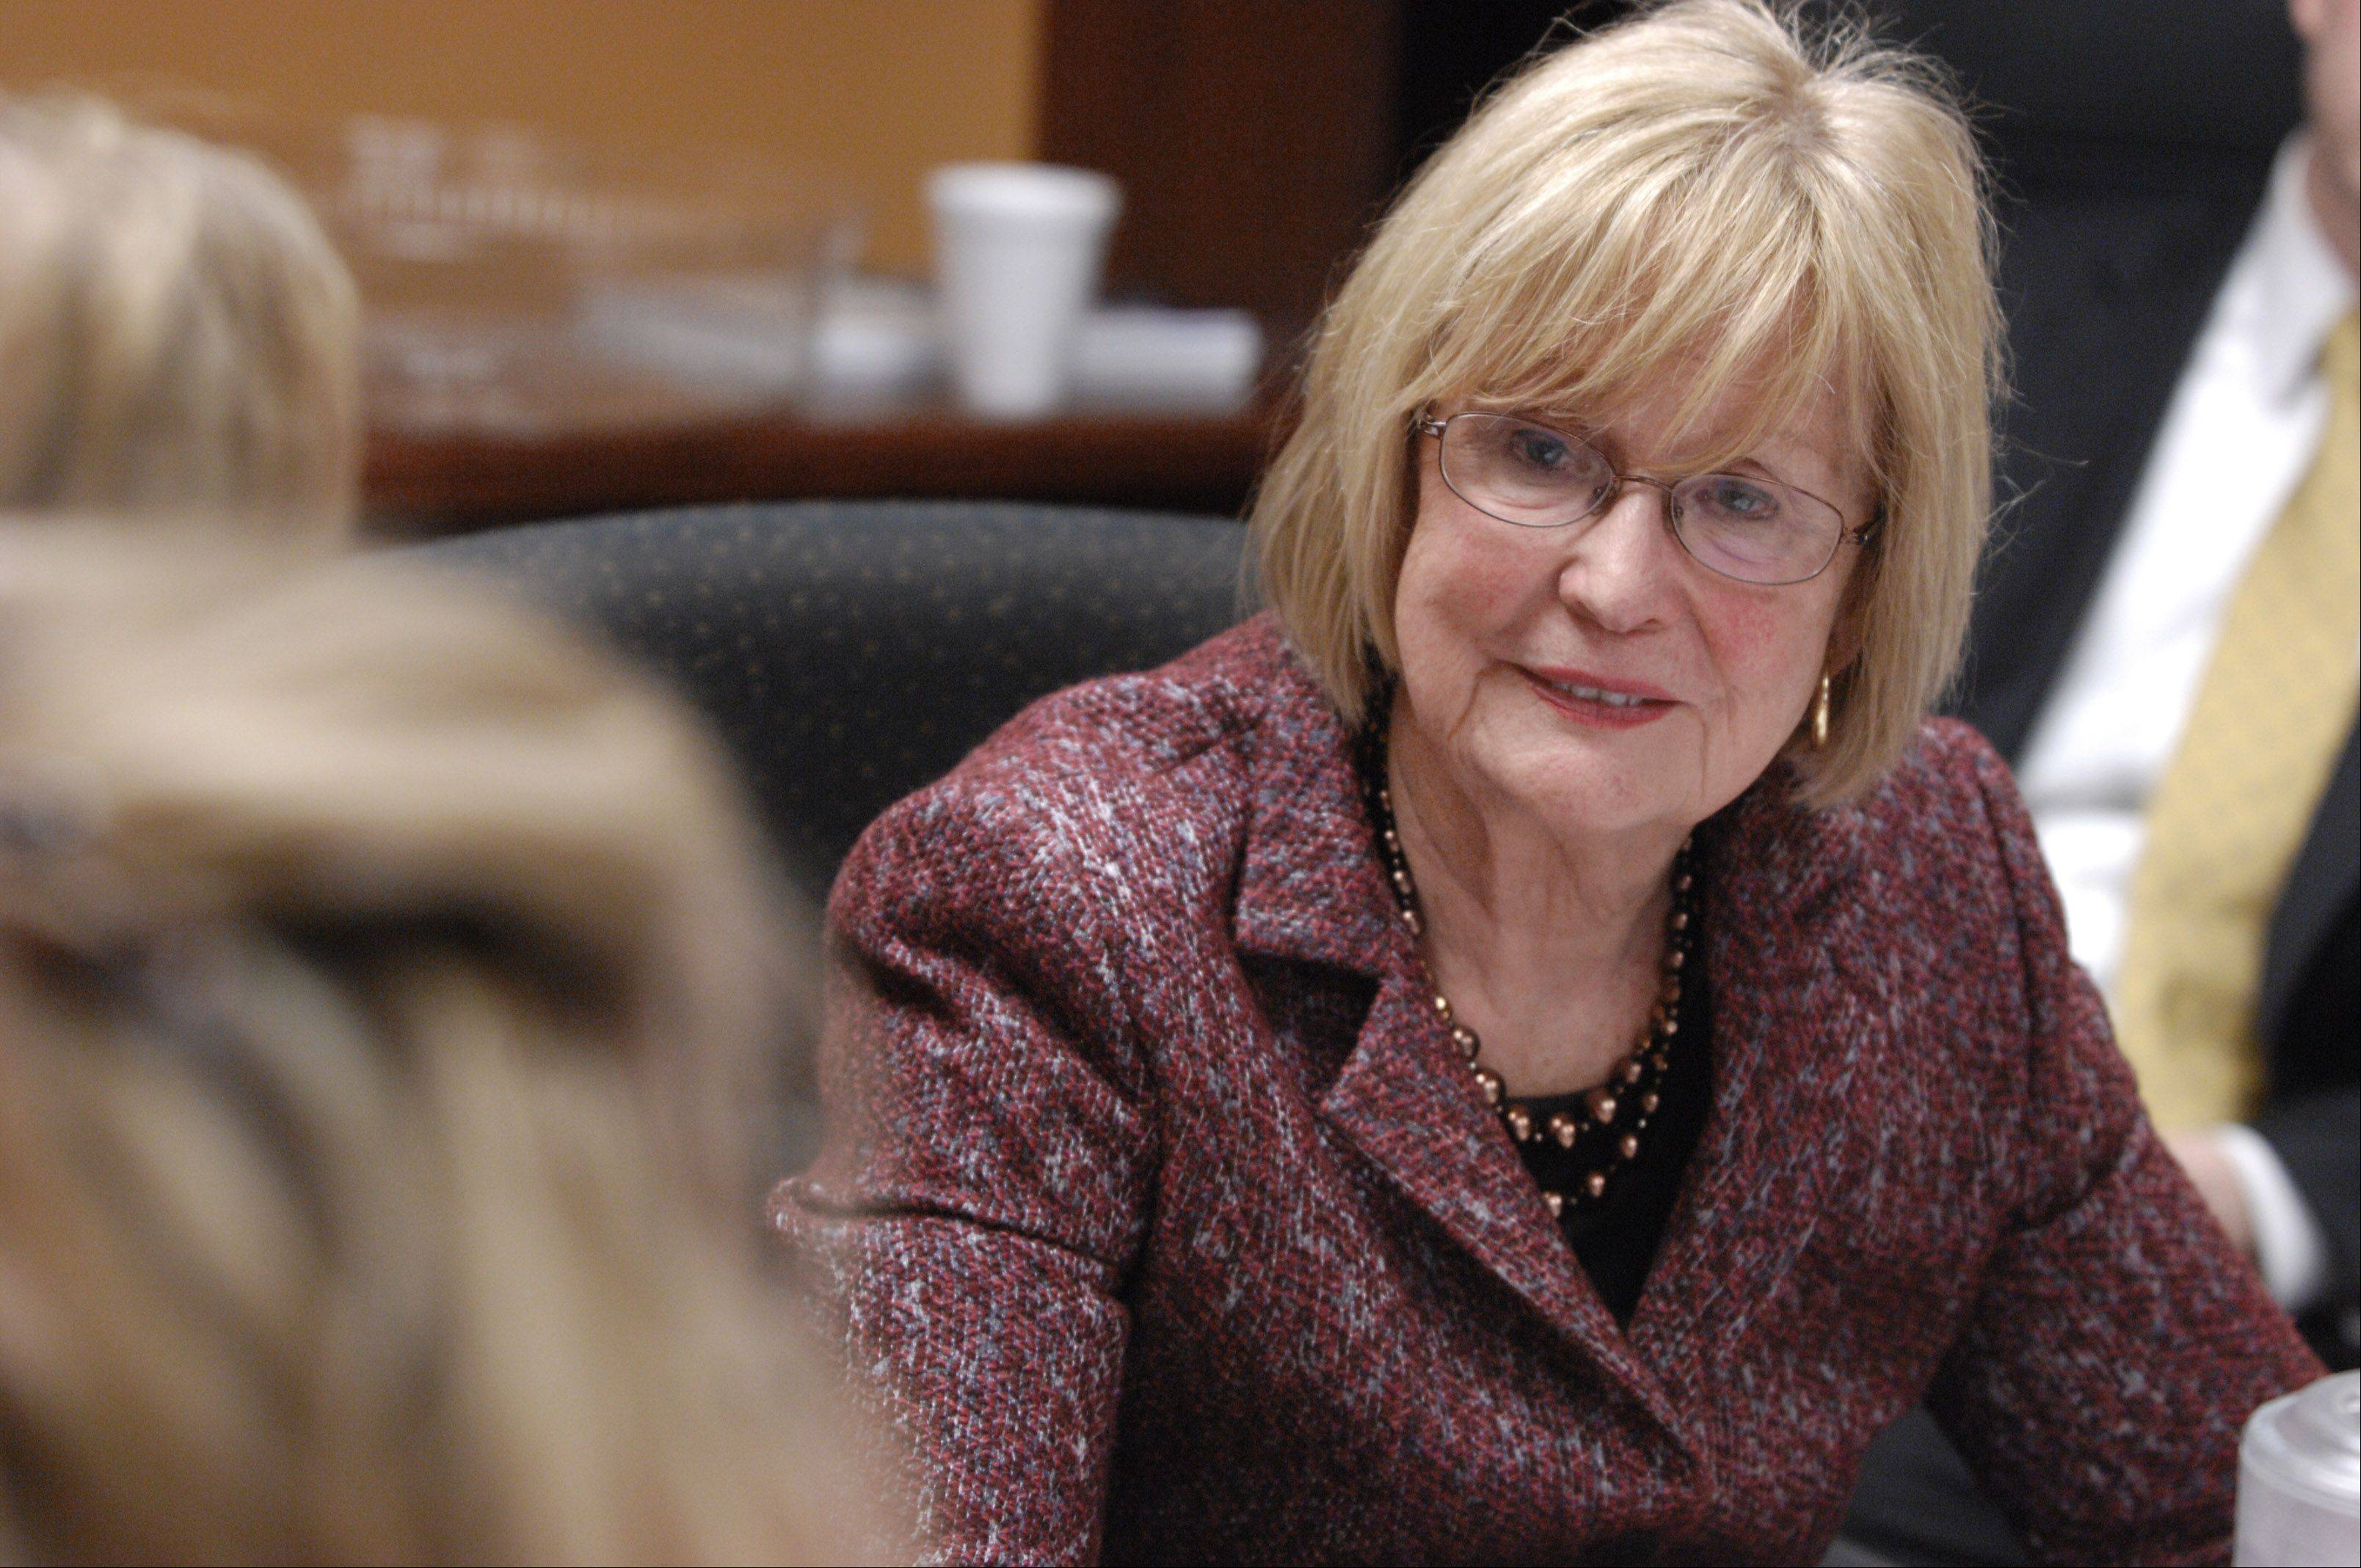 U.S. Rep. Judy Biggert of Hinsdale reflected on her political past � and future � Friday in a taping of WBBM Newsradio 780�s �At Issue,� hosted by Political Editor Craig Dellimore and the Daily Herald, which will air in full Sunday morning.